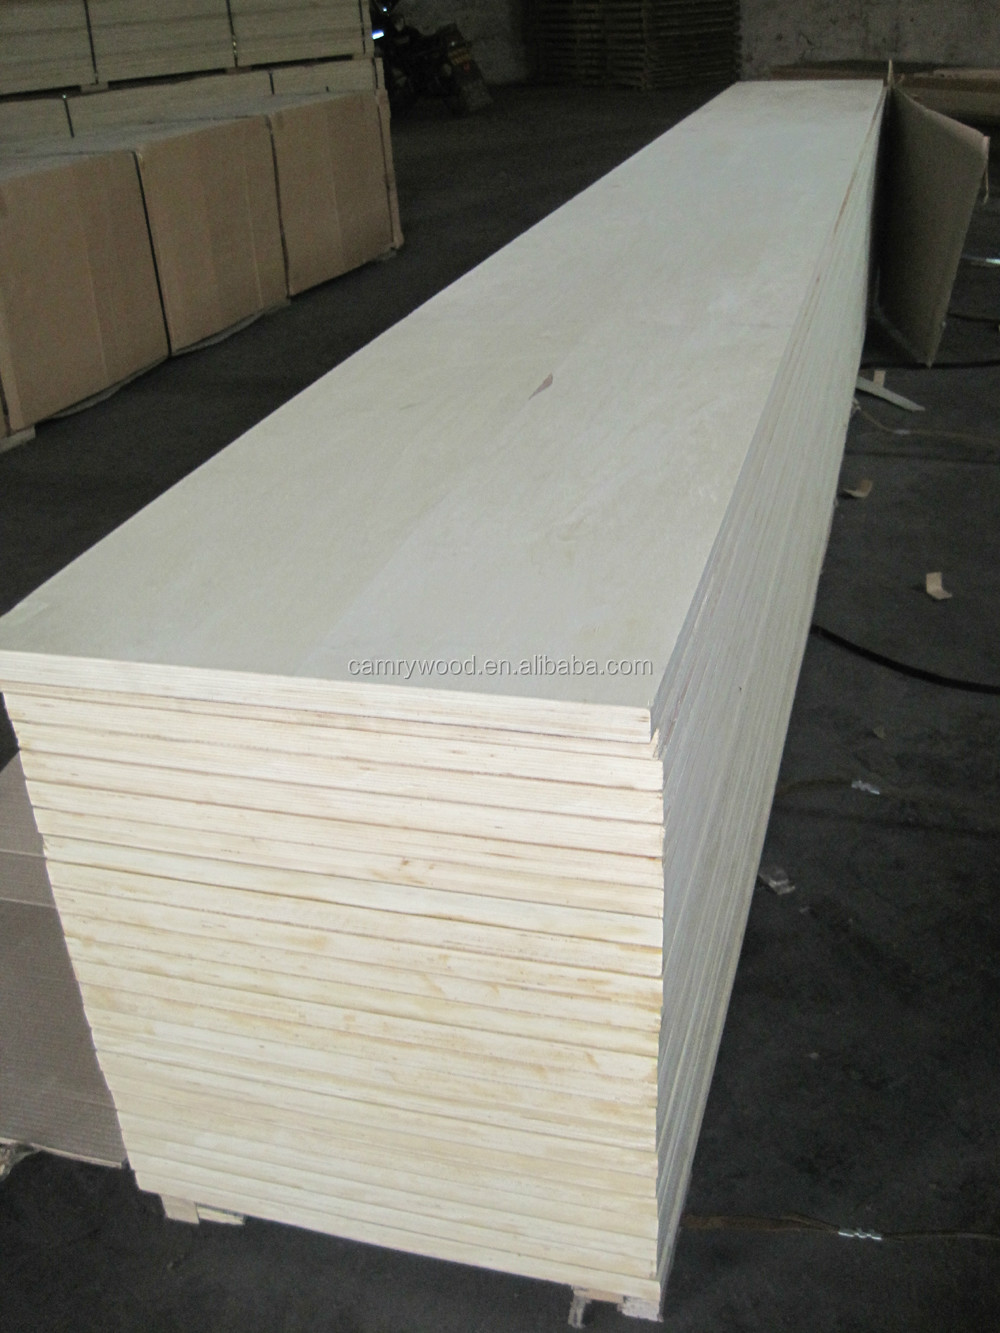 USA Standard big size the grade number 1 melamine paper laminated plywood used for Europe furniture